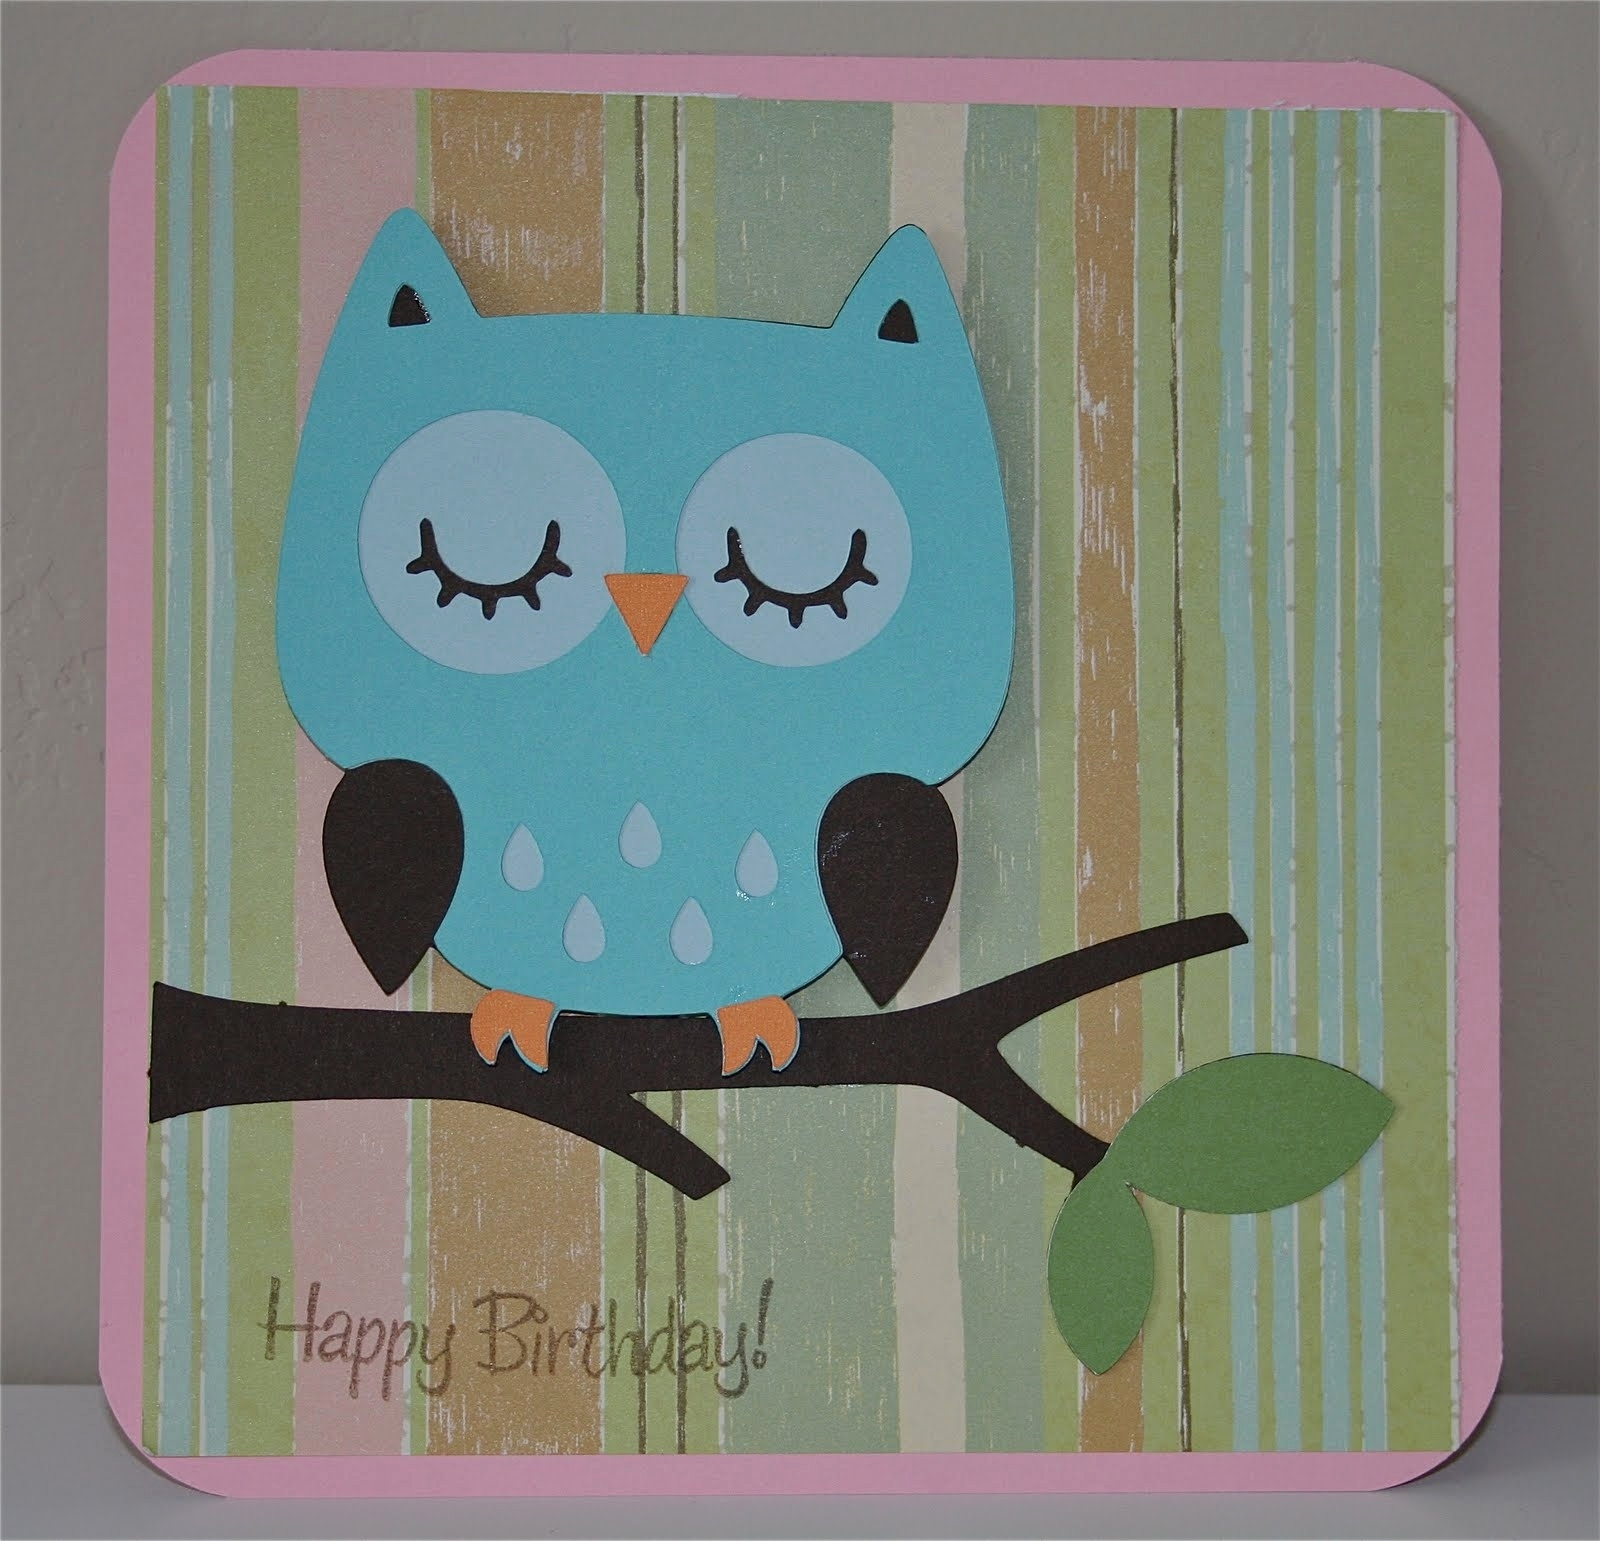 handmade birthday card ideas for boys ; handmade-birthday-card-ideas-inspirational-87-awesome-gallery-handmade-birthday-card-ideas-for-kids-of-handmade-birthday-card-ideas